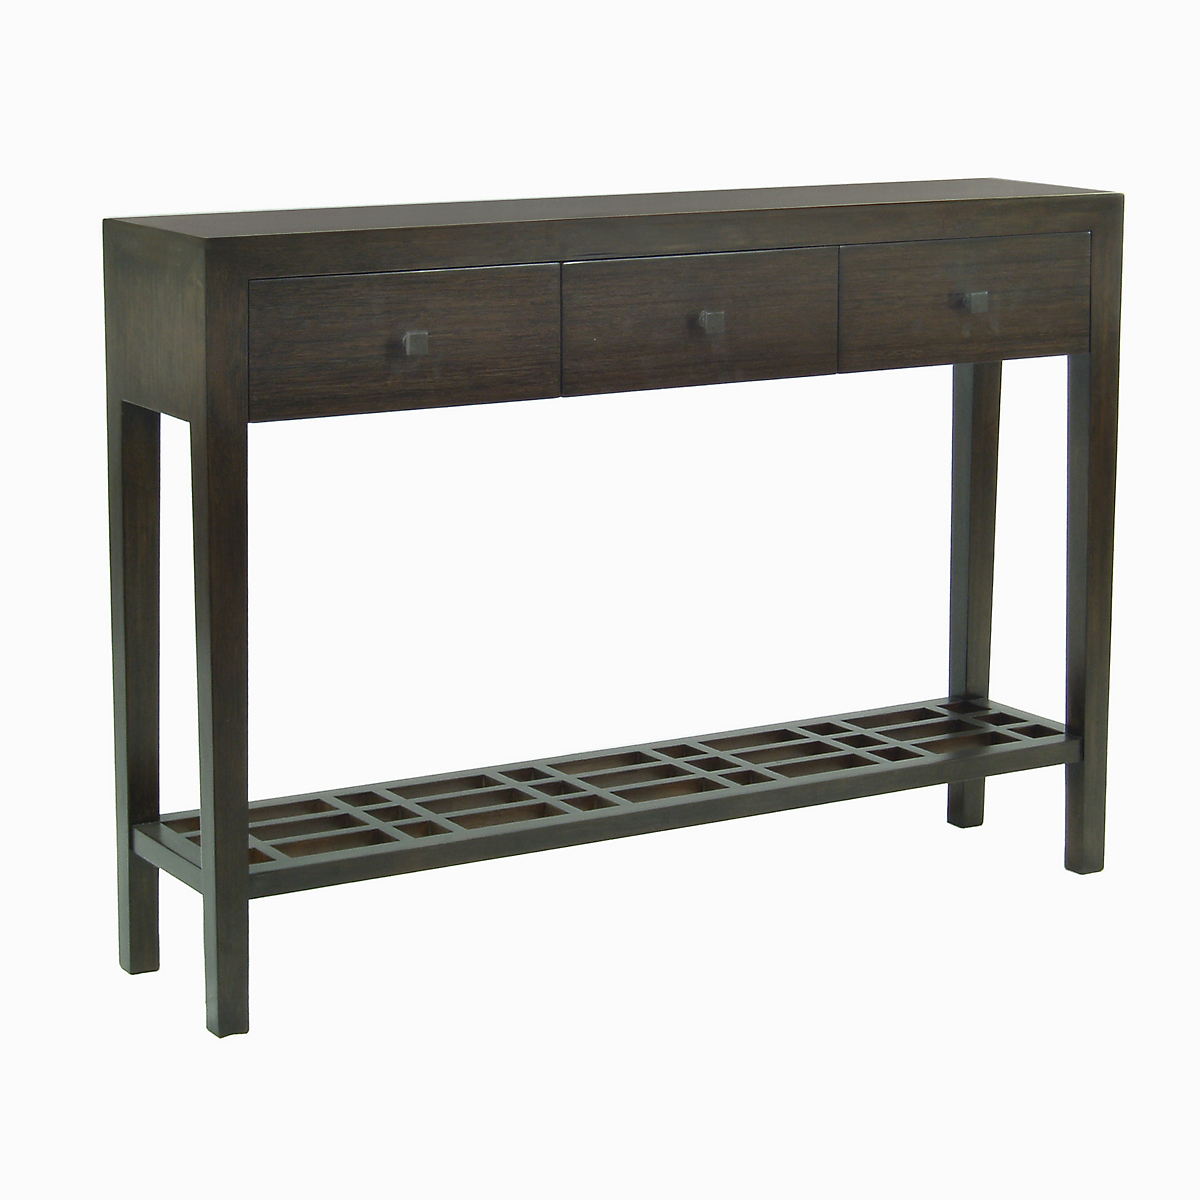 Maria yee metro 48 console table with lattice shelf gump 39 s - American history x dinner table scene ...